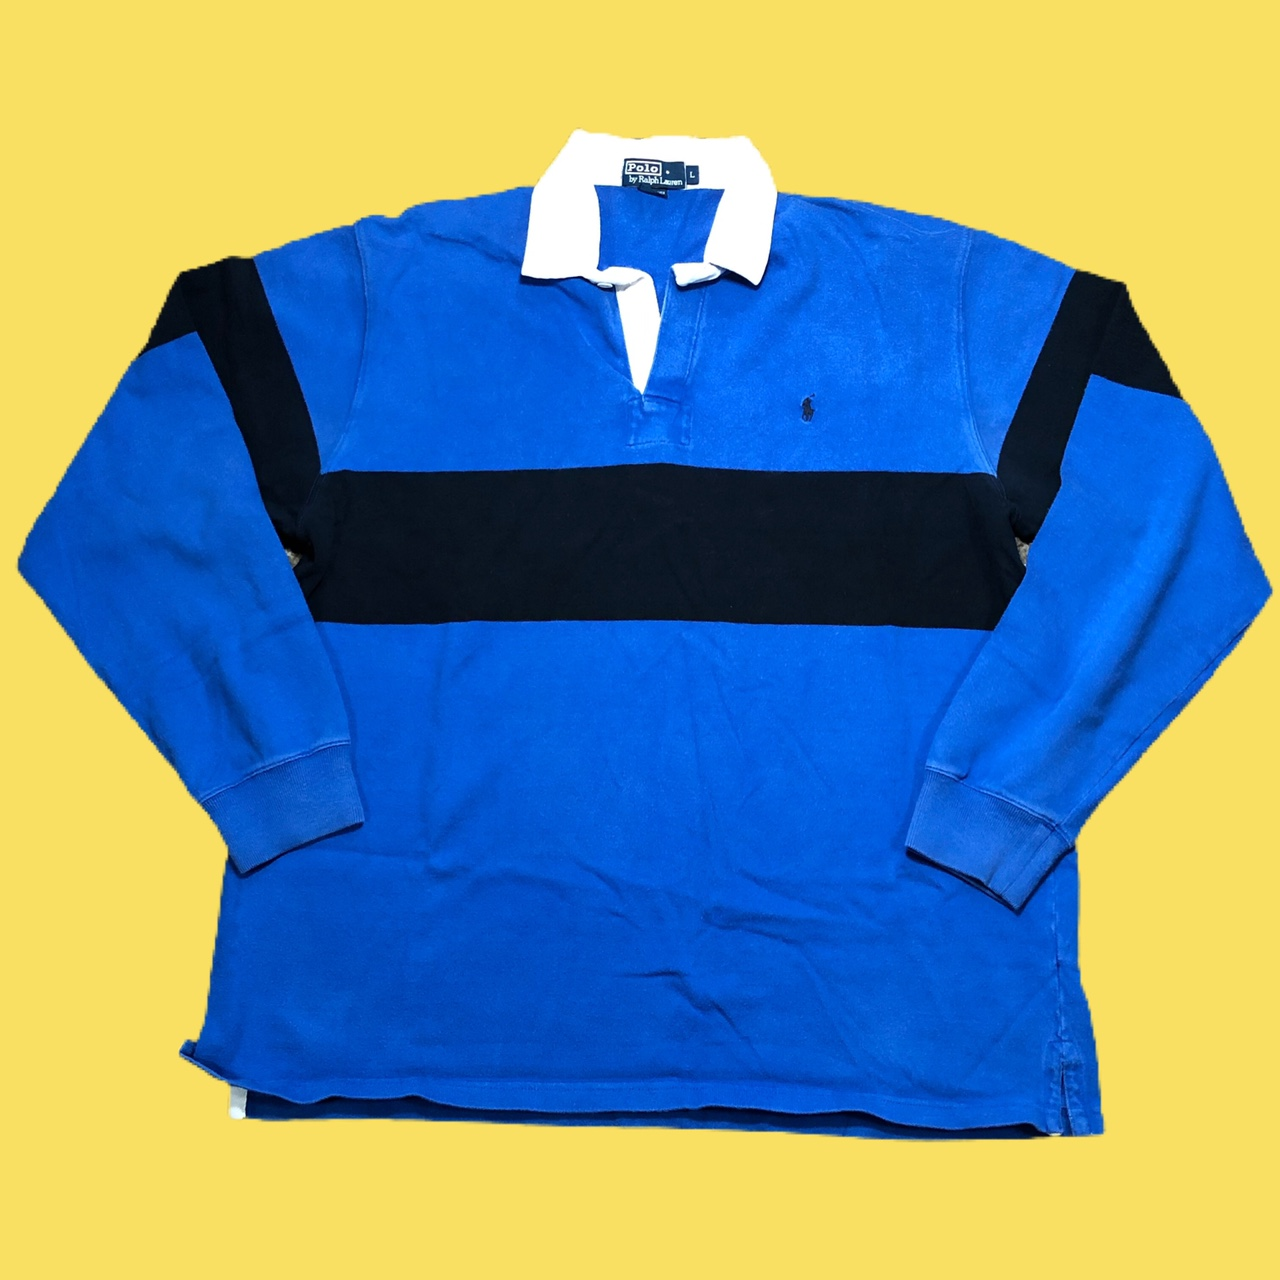 Product Image 1 - Vintage Polo Ralph Lauren rugby